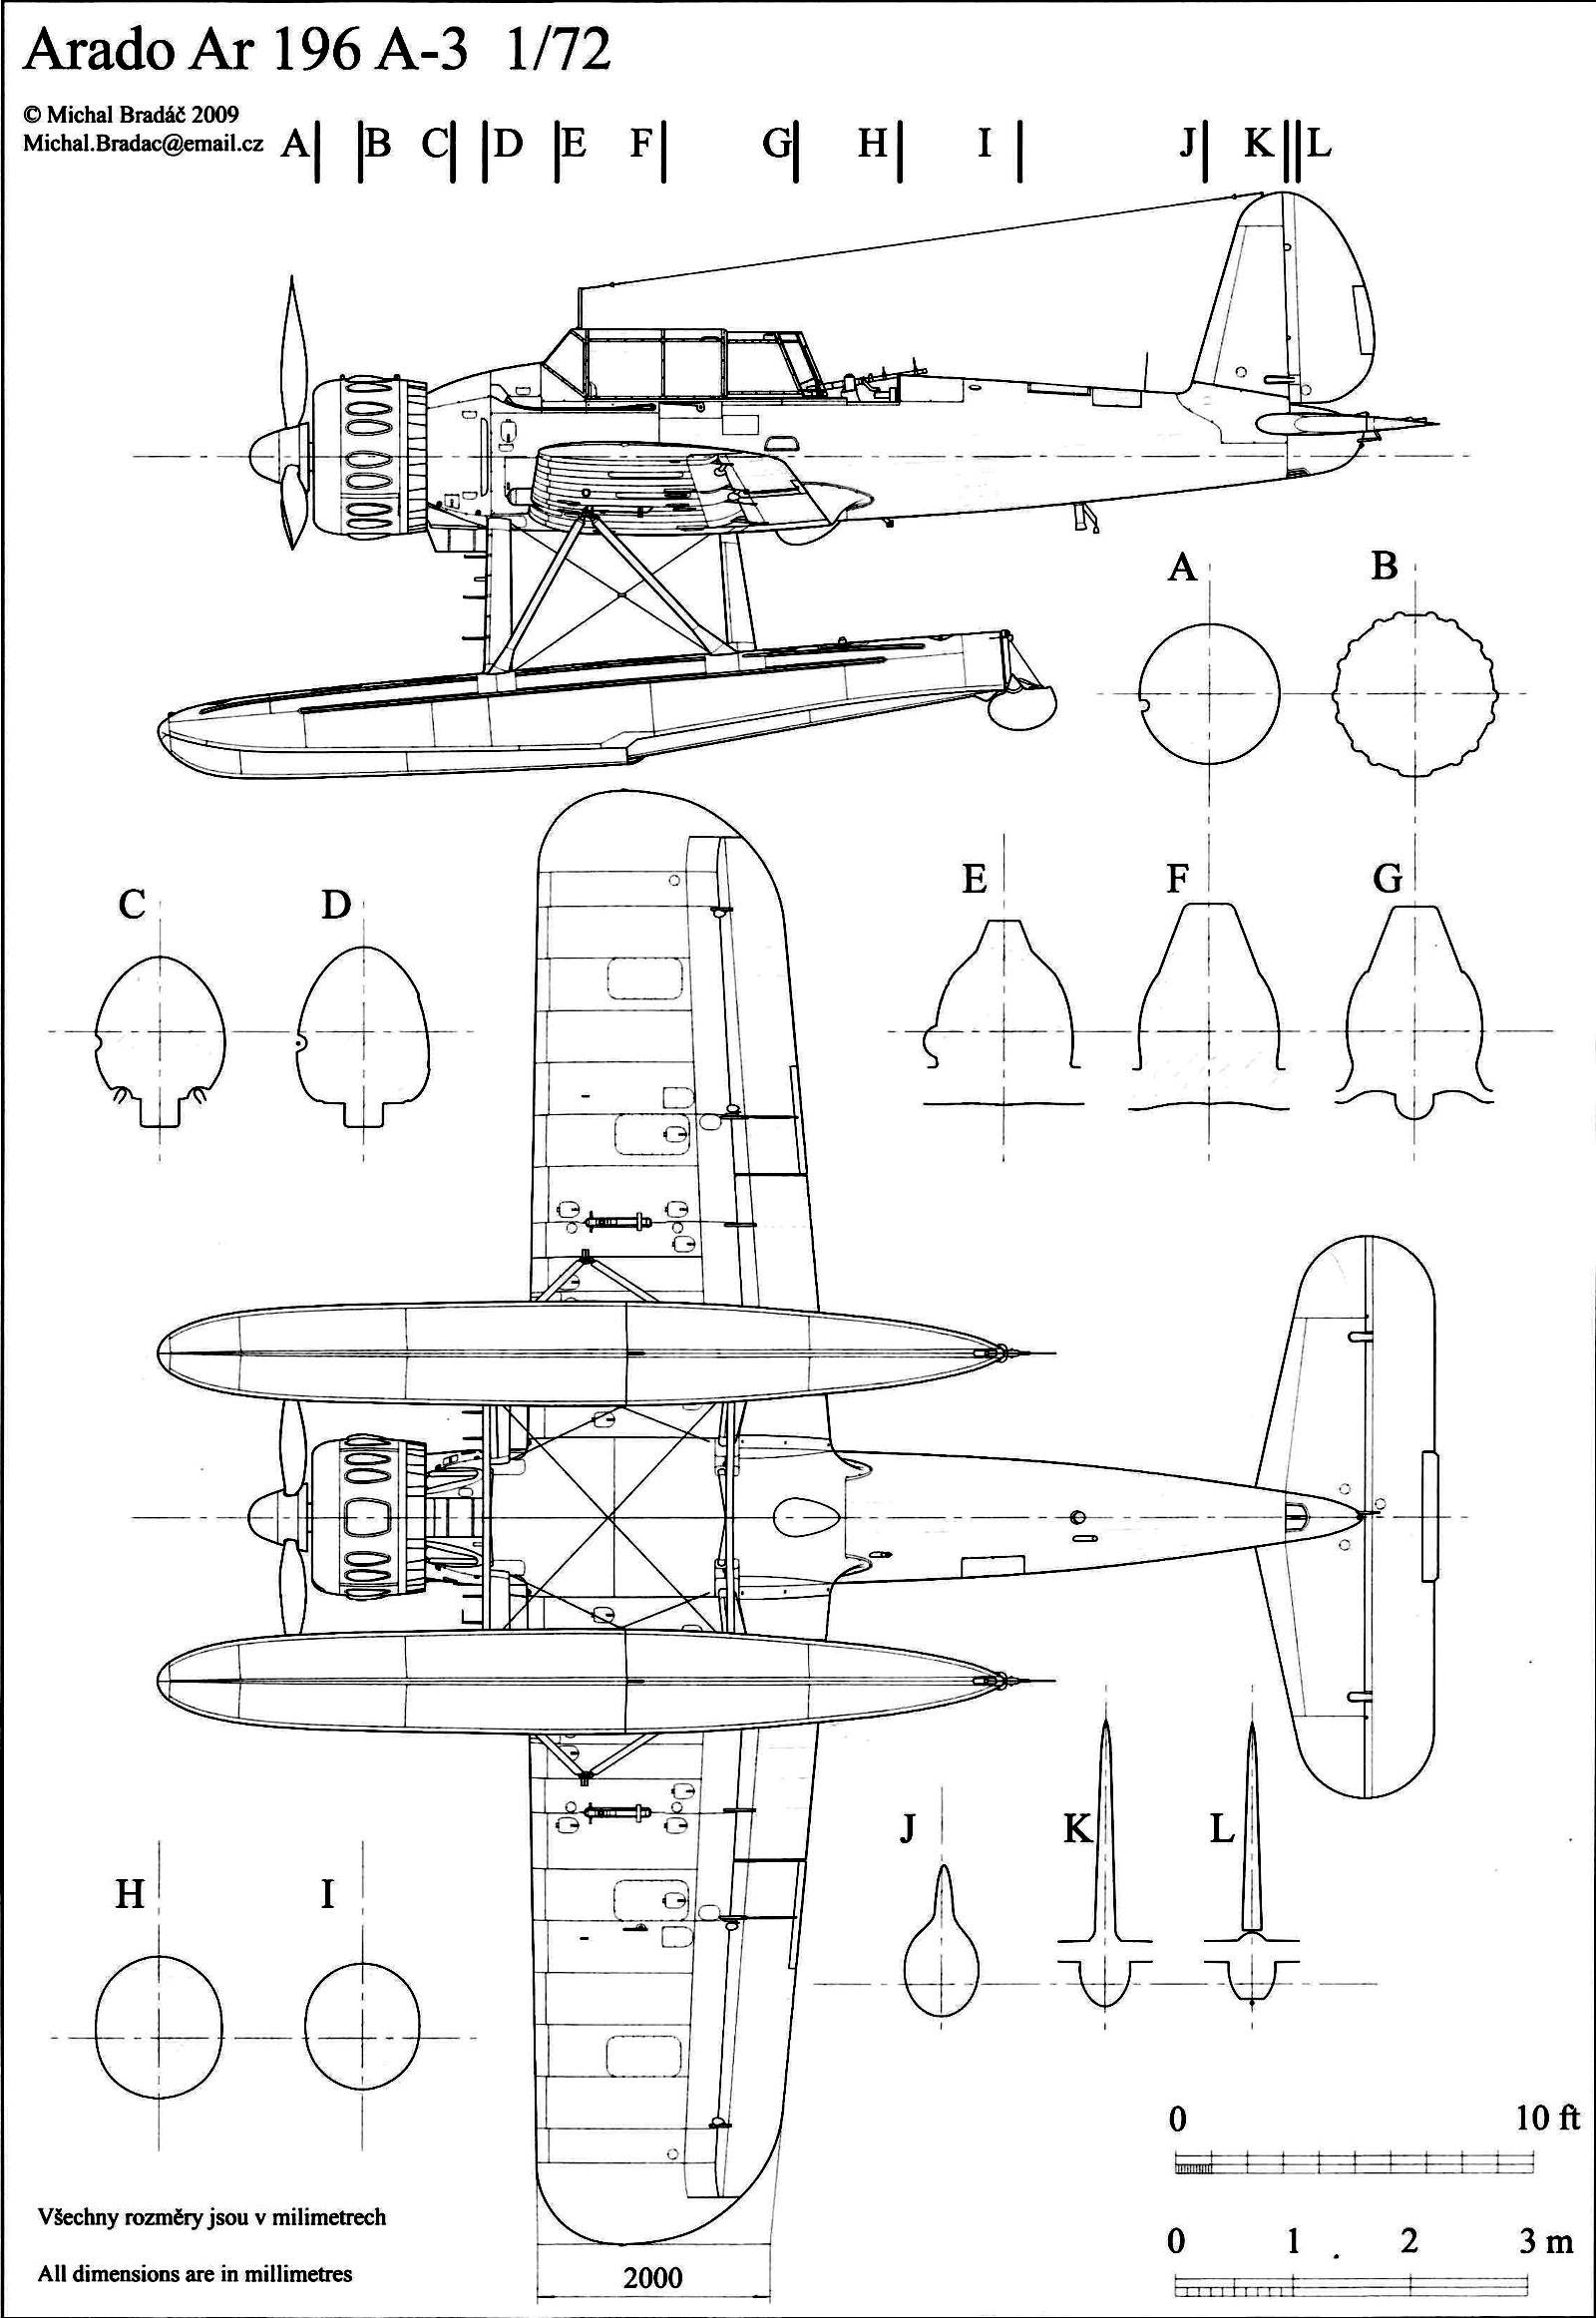 Aircraft technical drawing of Arado Ar 196A3 in 1.72 scale